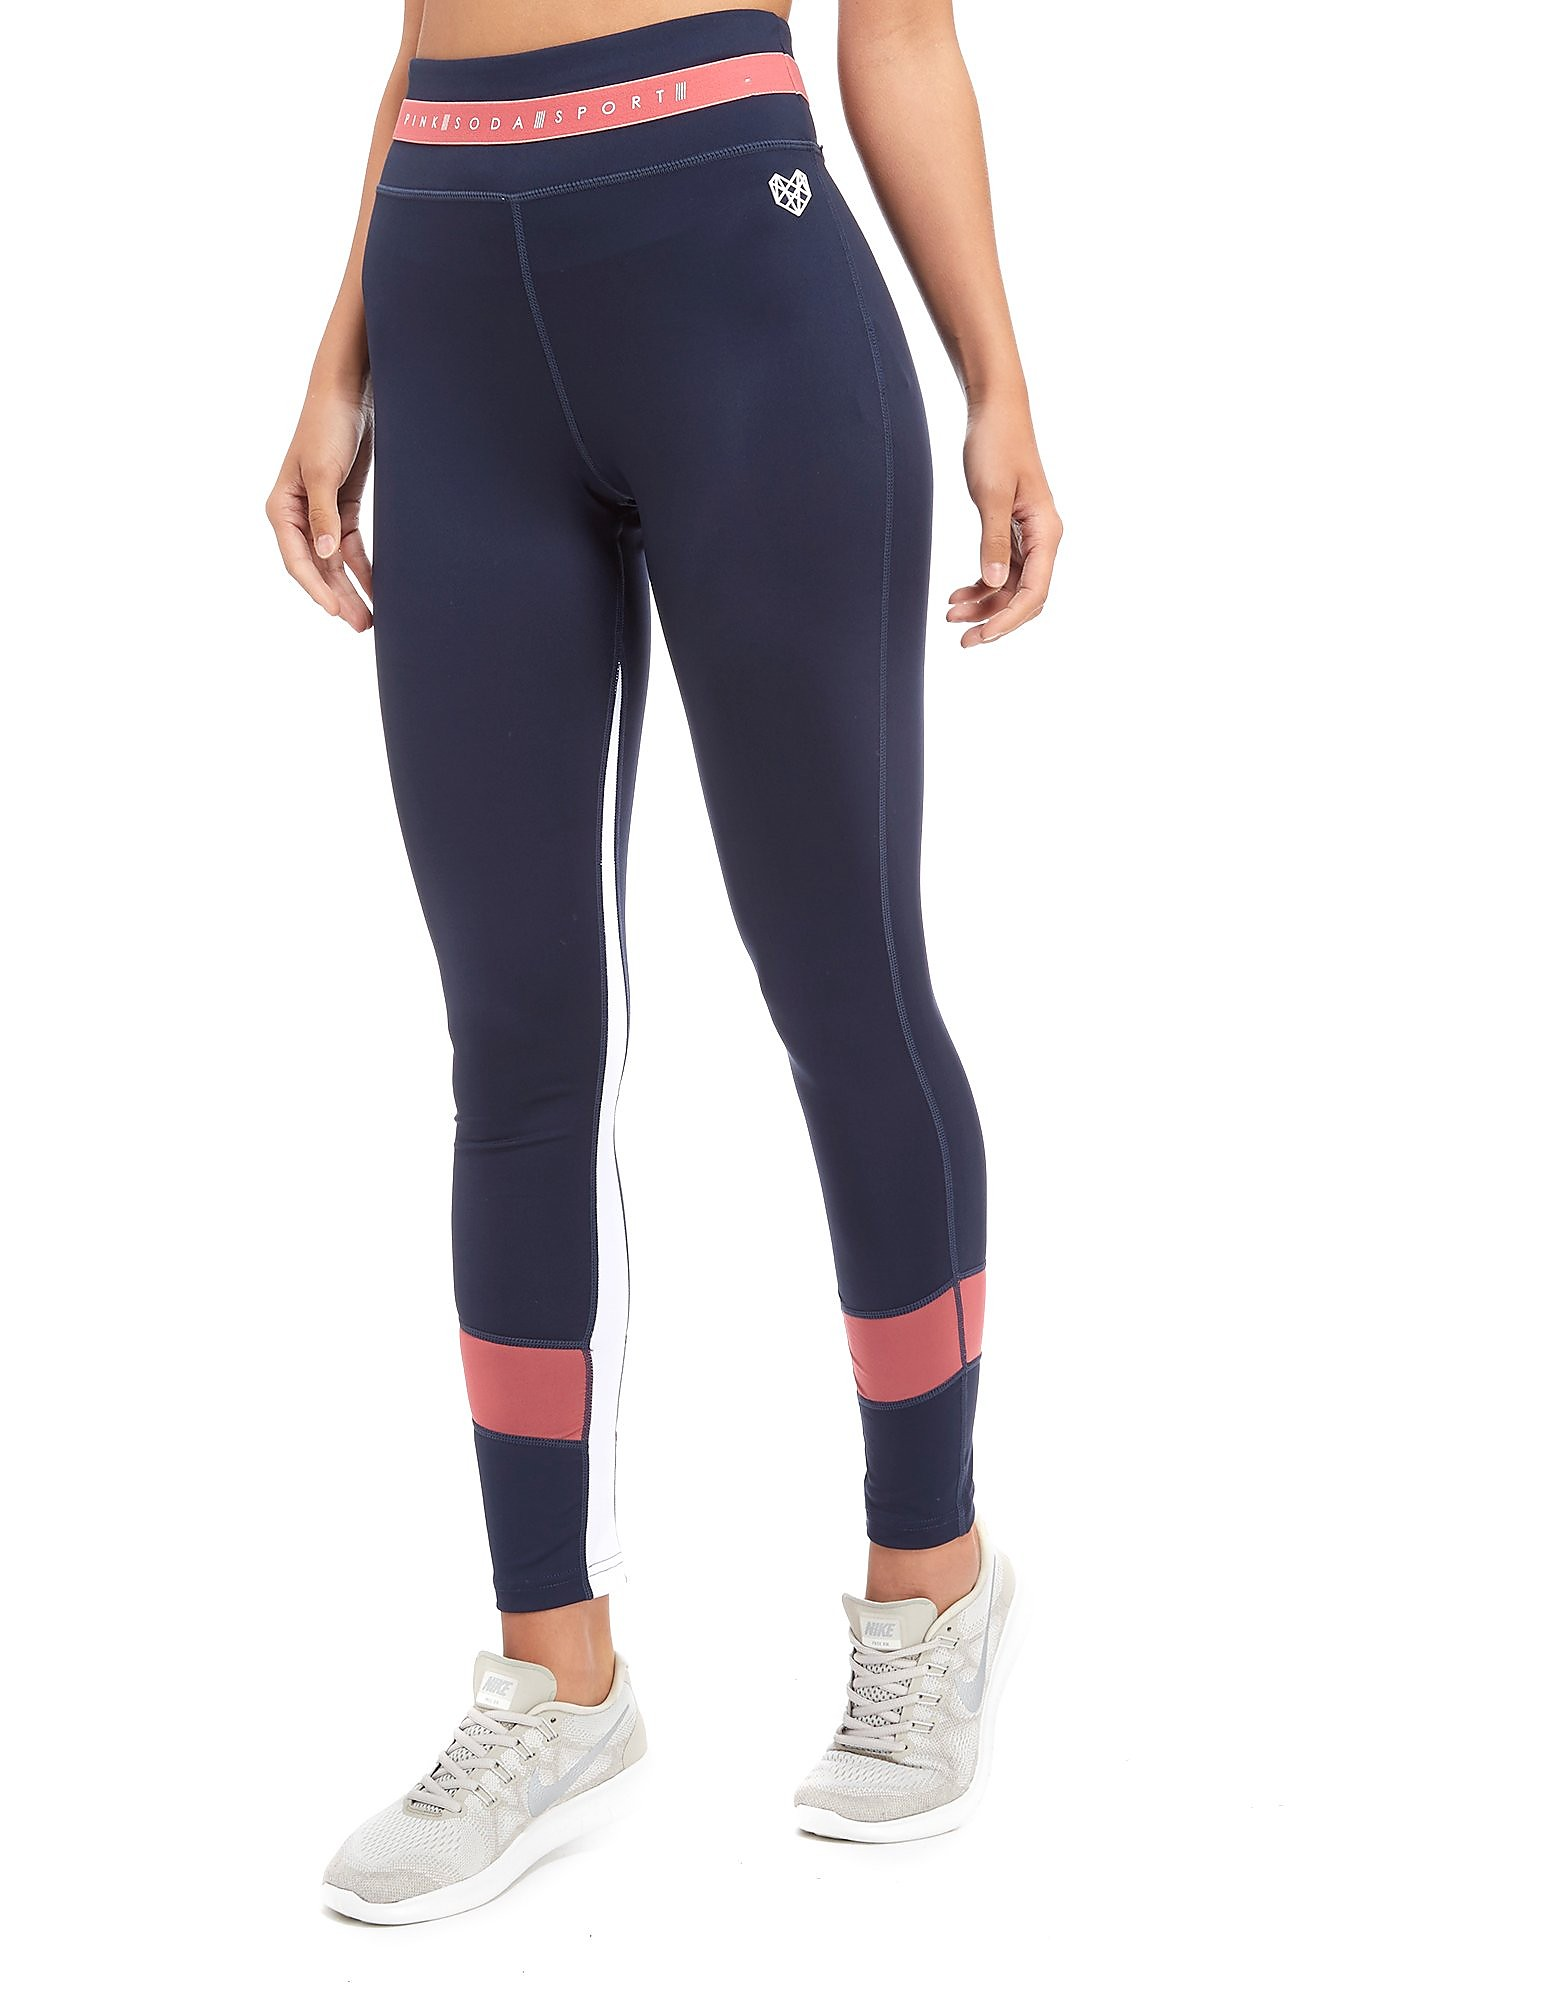 Pink Soda Sport Panel Fitness Tights